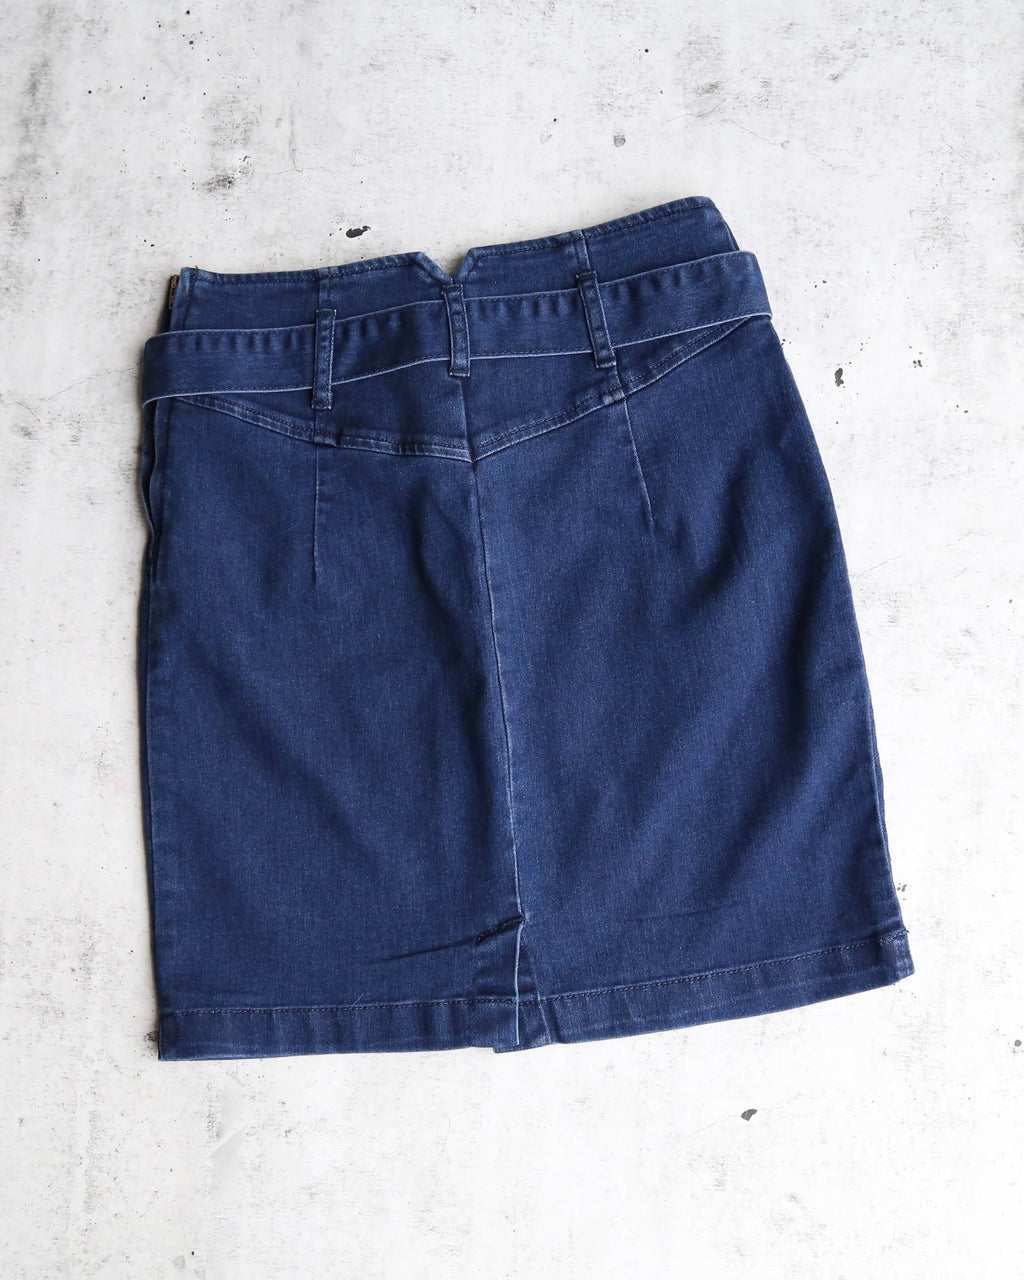 0f37ca2fe8e2 Free People - Livin It Up Denim Pencil Mini Skirt - Denim Blue